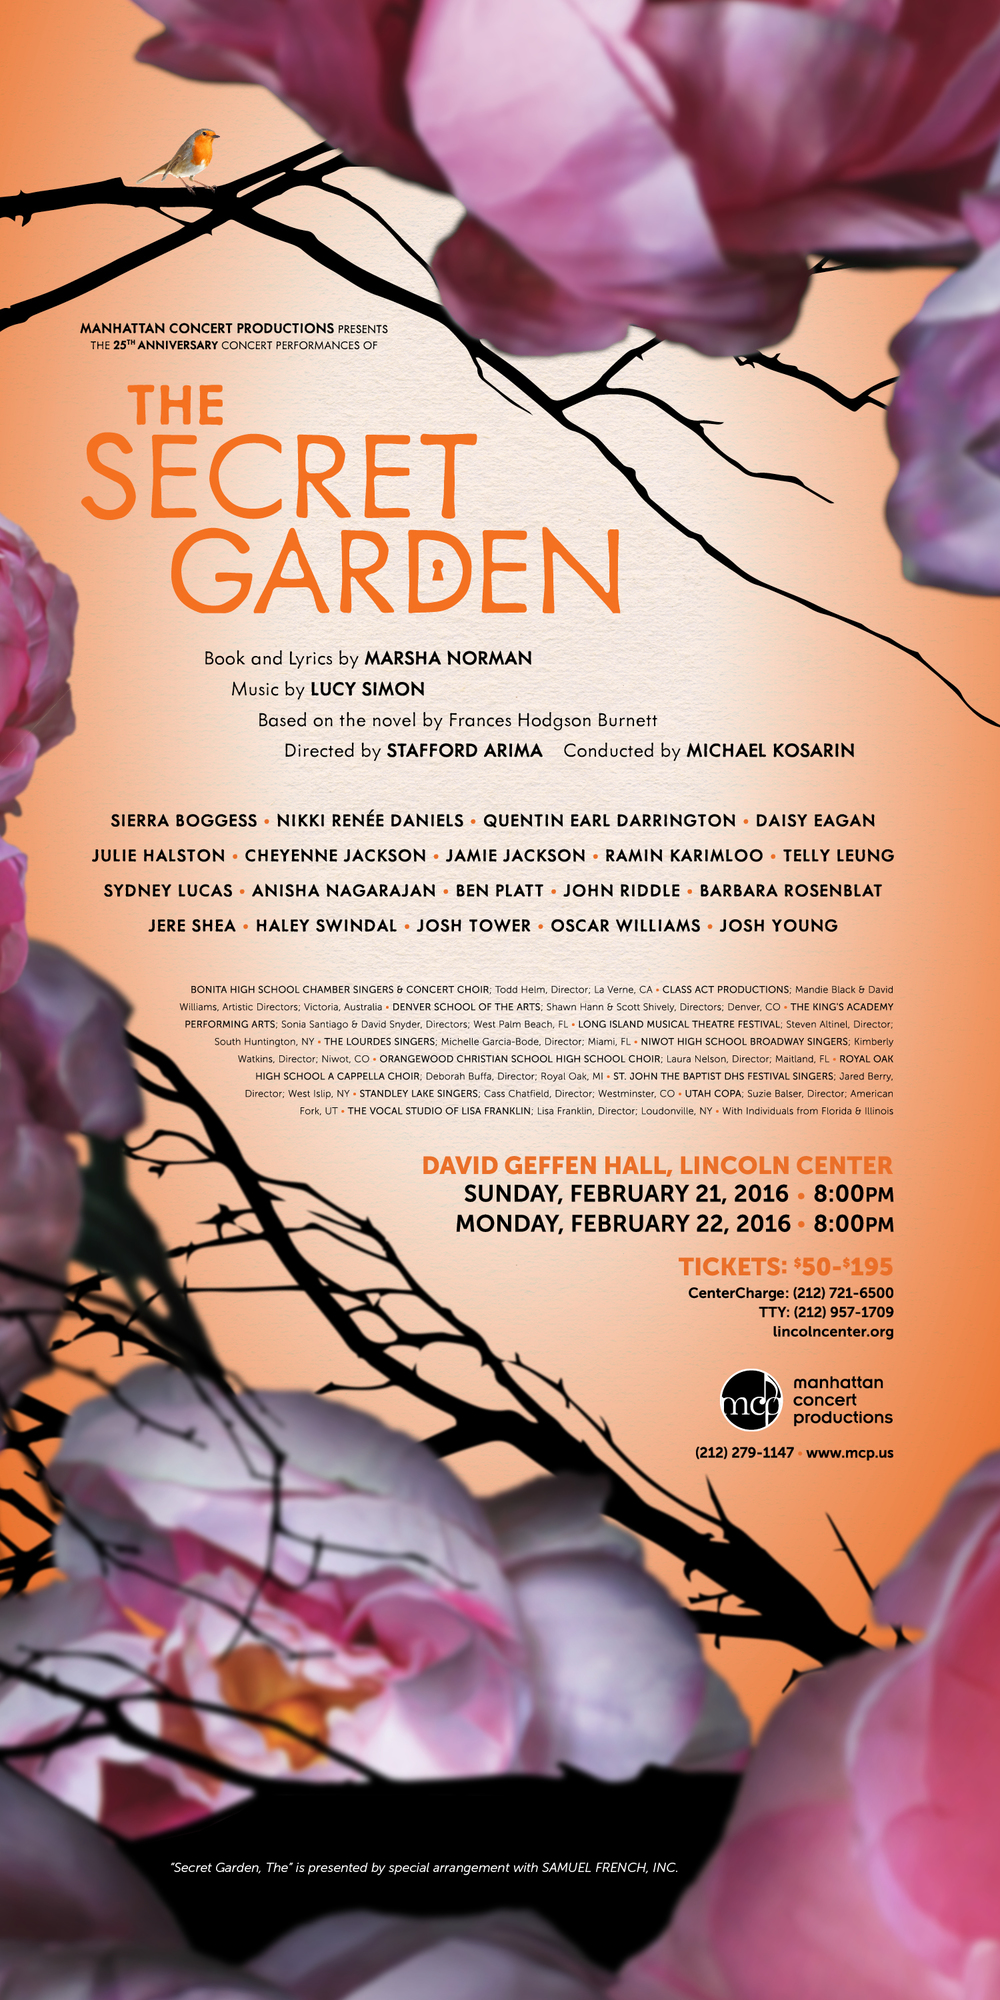 February 21-22, 2016 - David Geffen Hall - NYC